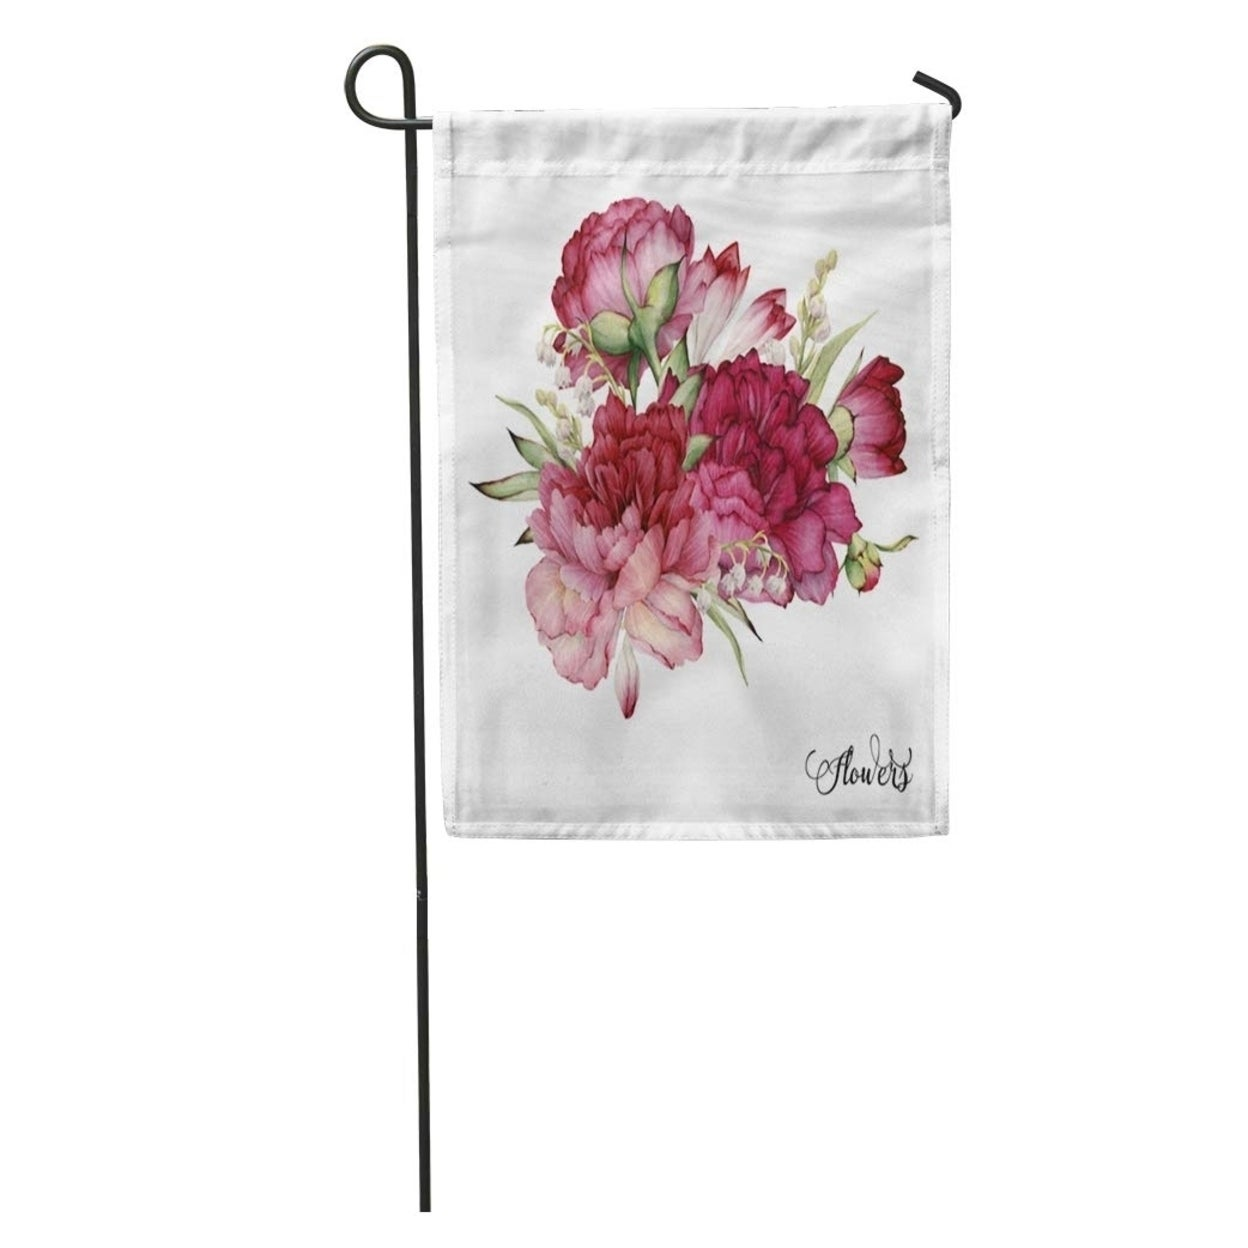 Flower Bouquet Of Peonies Watercolor For Wedding Birthday Holiday And Summer Vintage Garden Flag Decorative Flag House N A On Sale Overstock 31442127